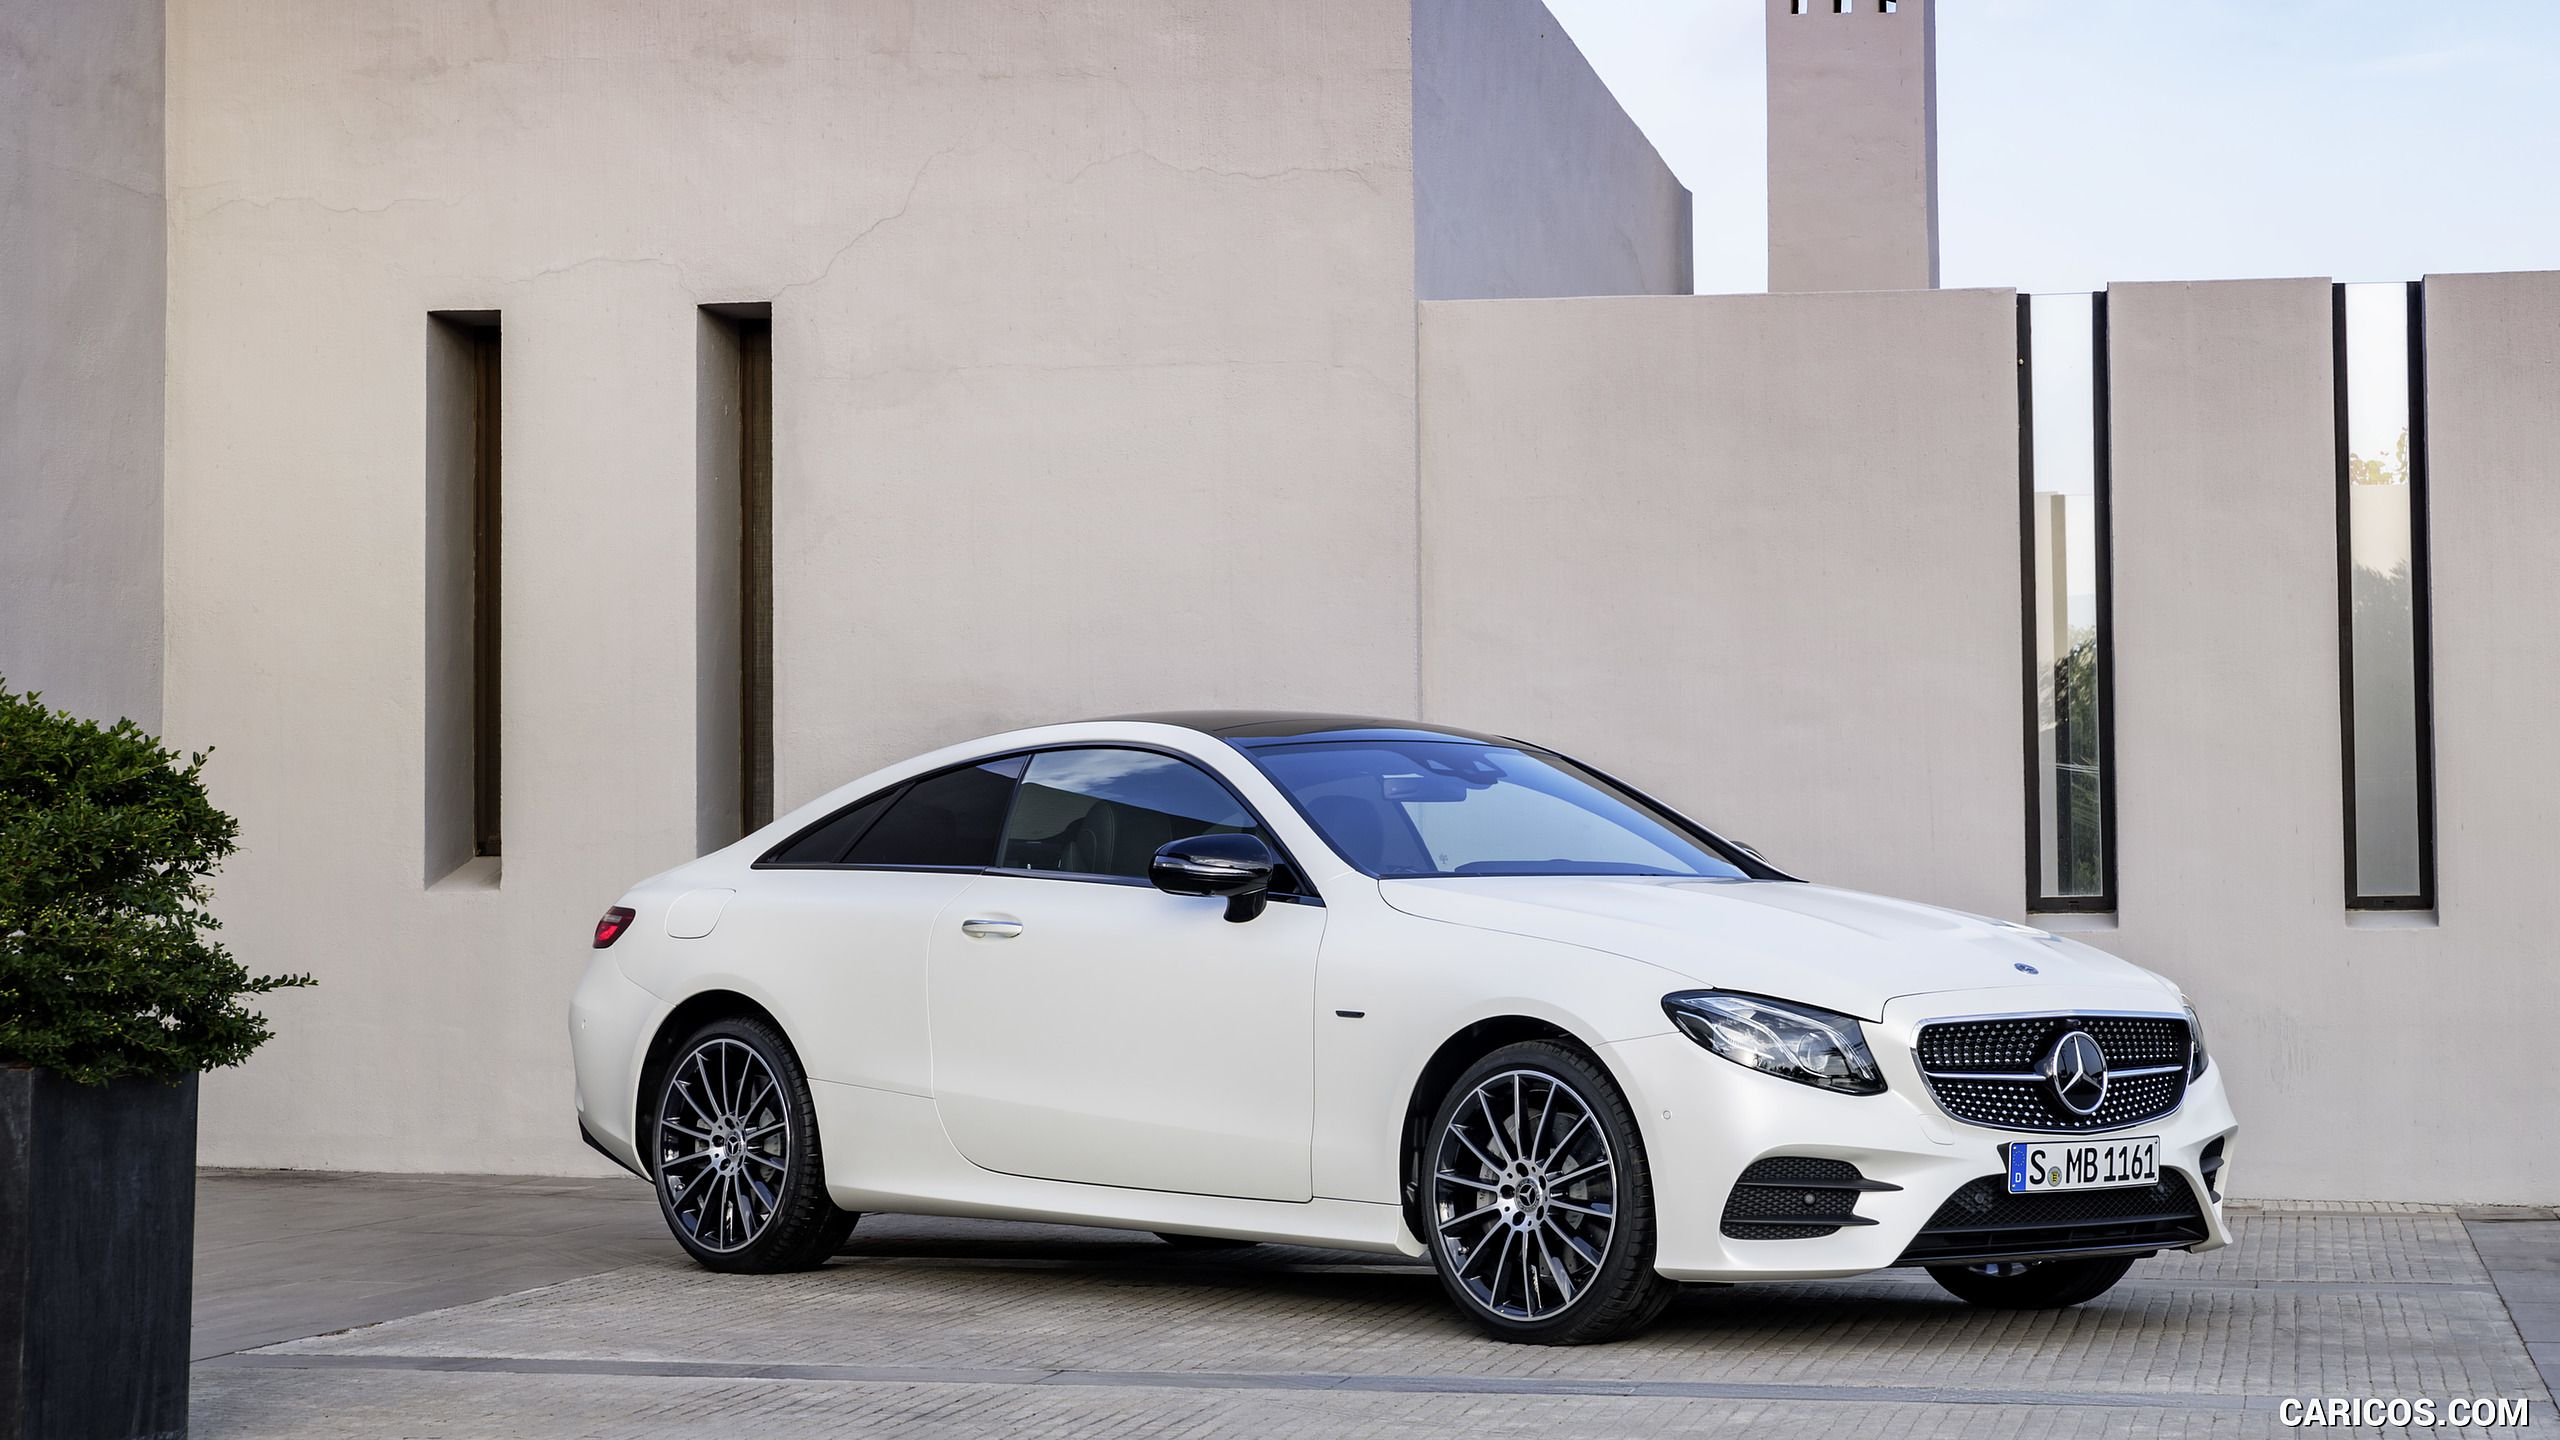 2018 Mercedes Benz E Class Coupe Edition 1 Amg Line Night Package Color Designo Kashmir White Magno Fron Benz E Mercedes E Class Coupe Mercedes Benz Coupe